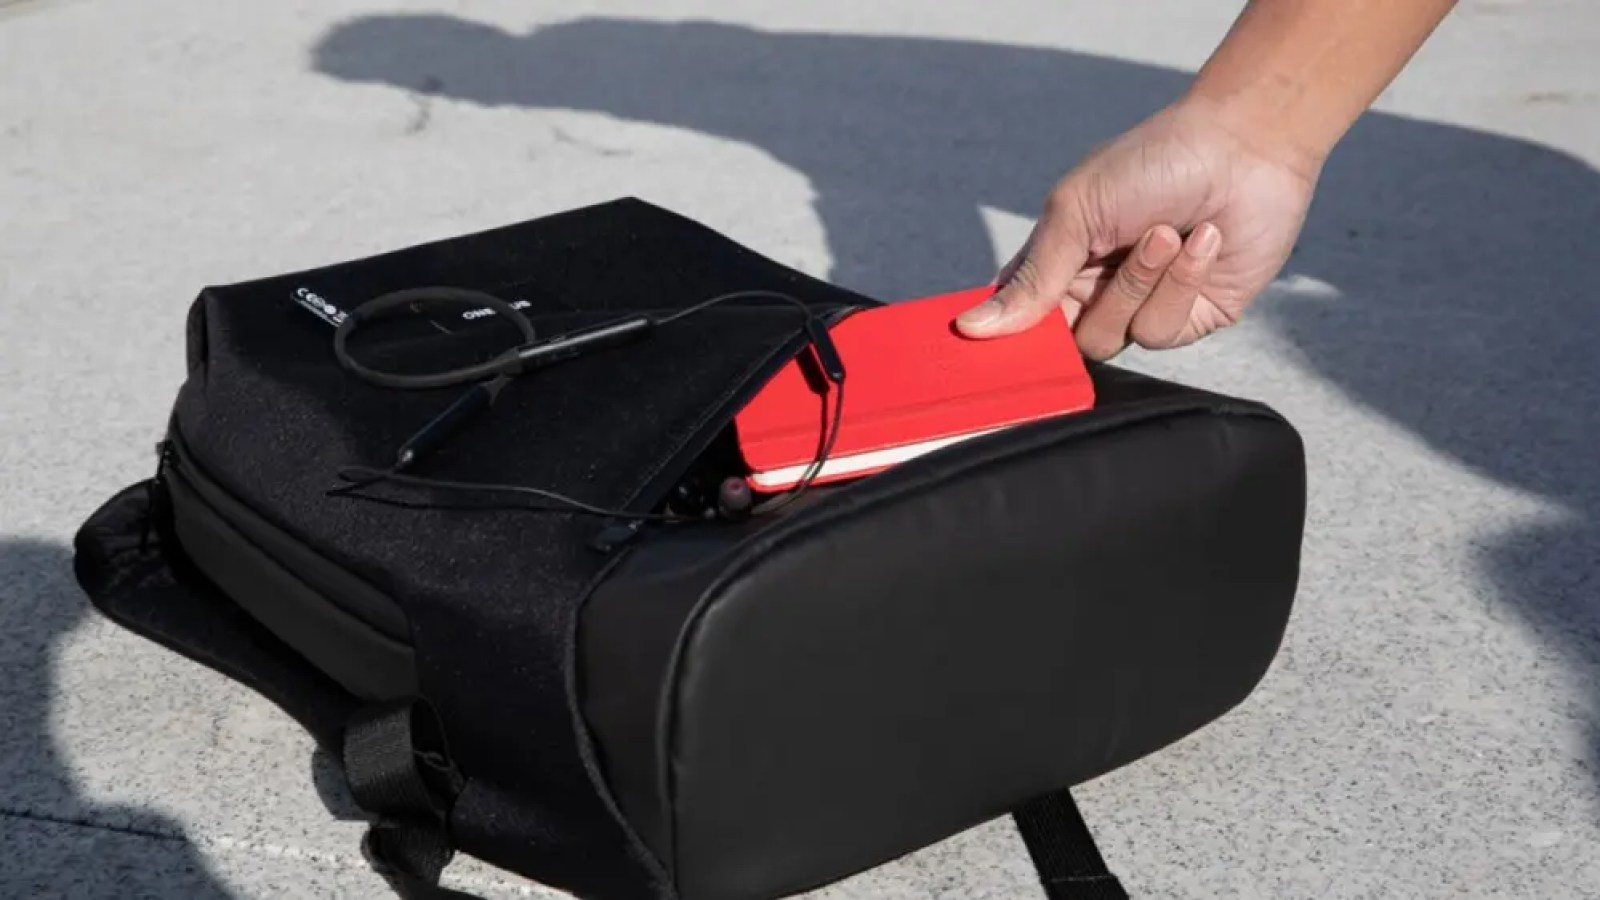 Someone inserting a notebook into the Urban Traveler backpack.